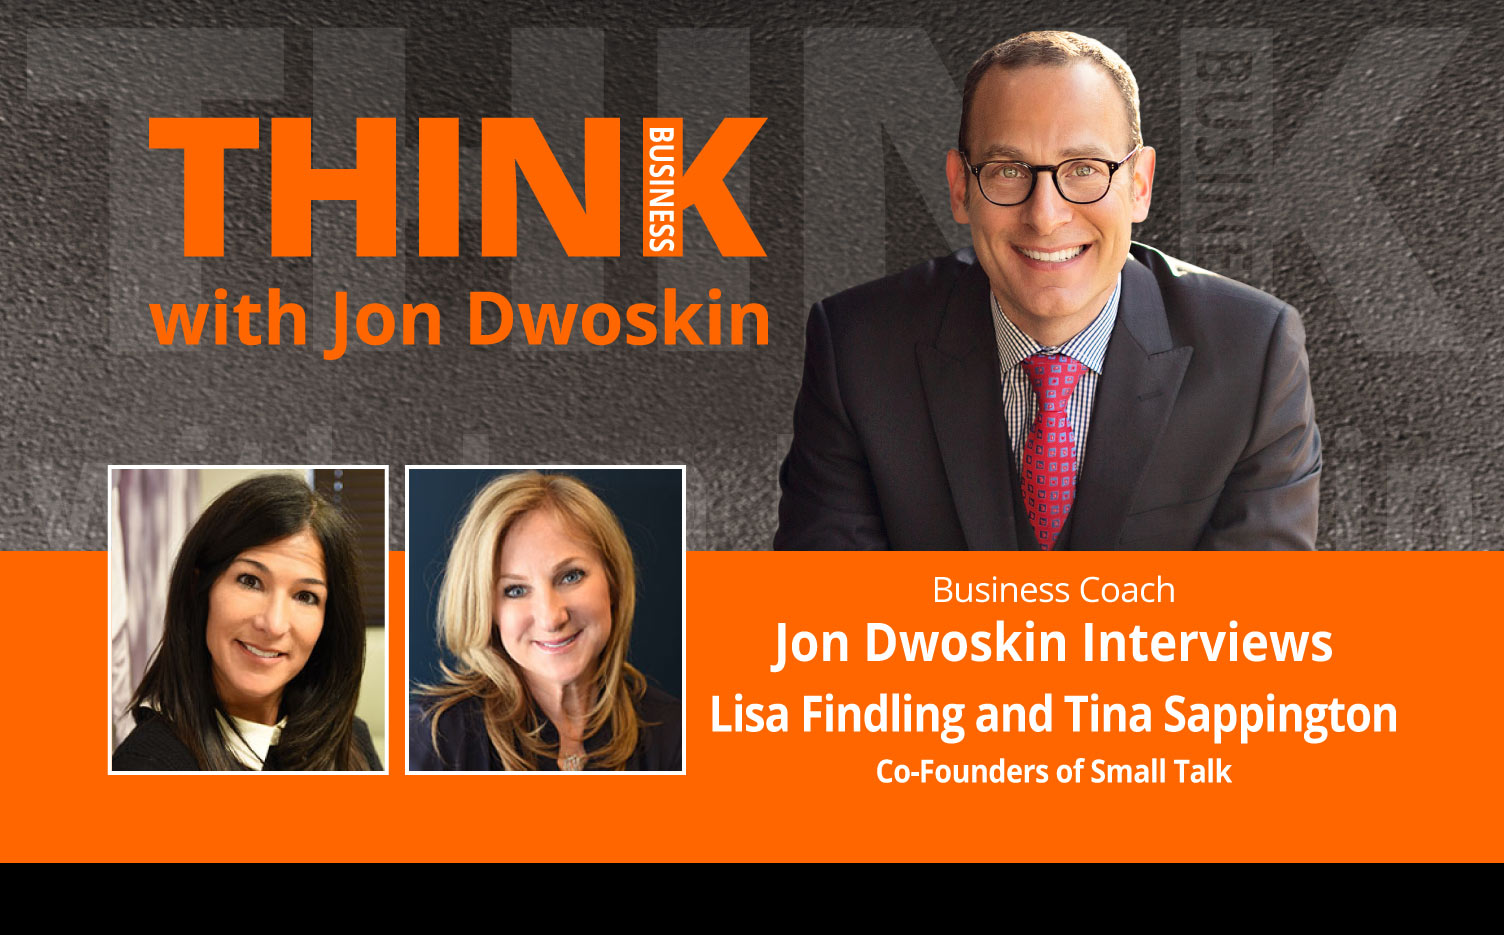 THINK Business Podcast: Jon Dwoskin Interviews Lisa Findling and Tina Sappington, Co-Founders of Small Talk